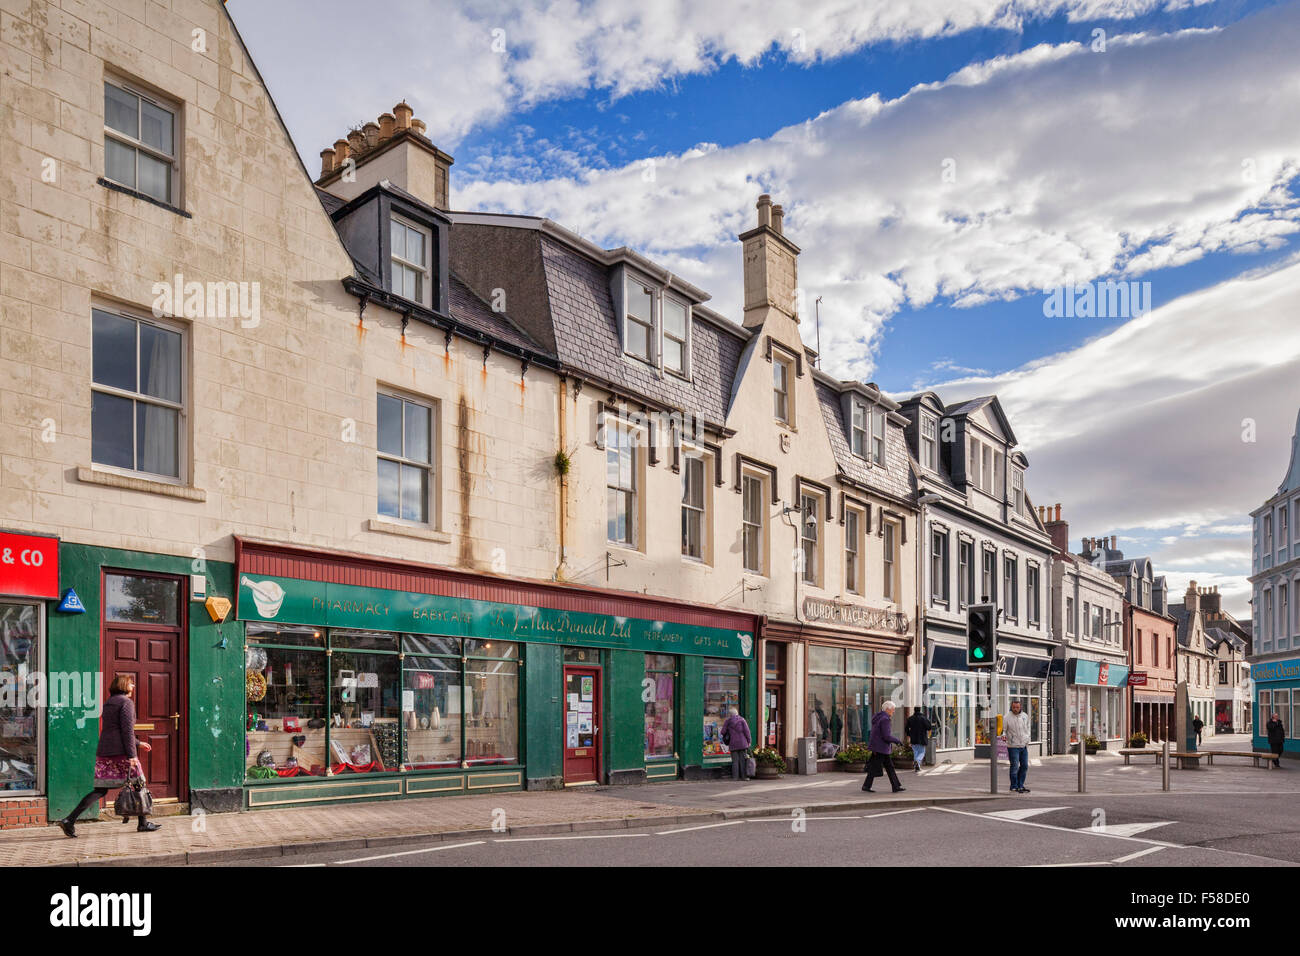 Shops and shoppers along Cromwell Street in Stornoway, Isle of Lewis, Outer Hebrides, Scotland, UK. - Stock Image